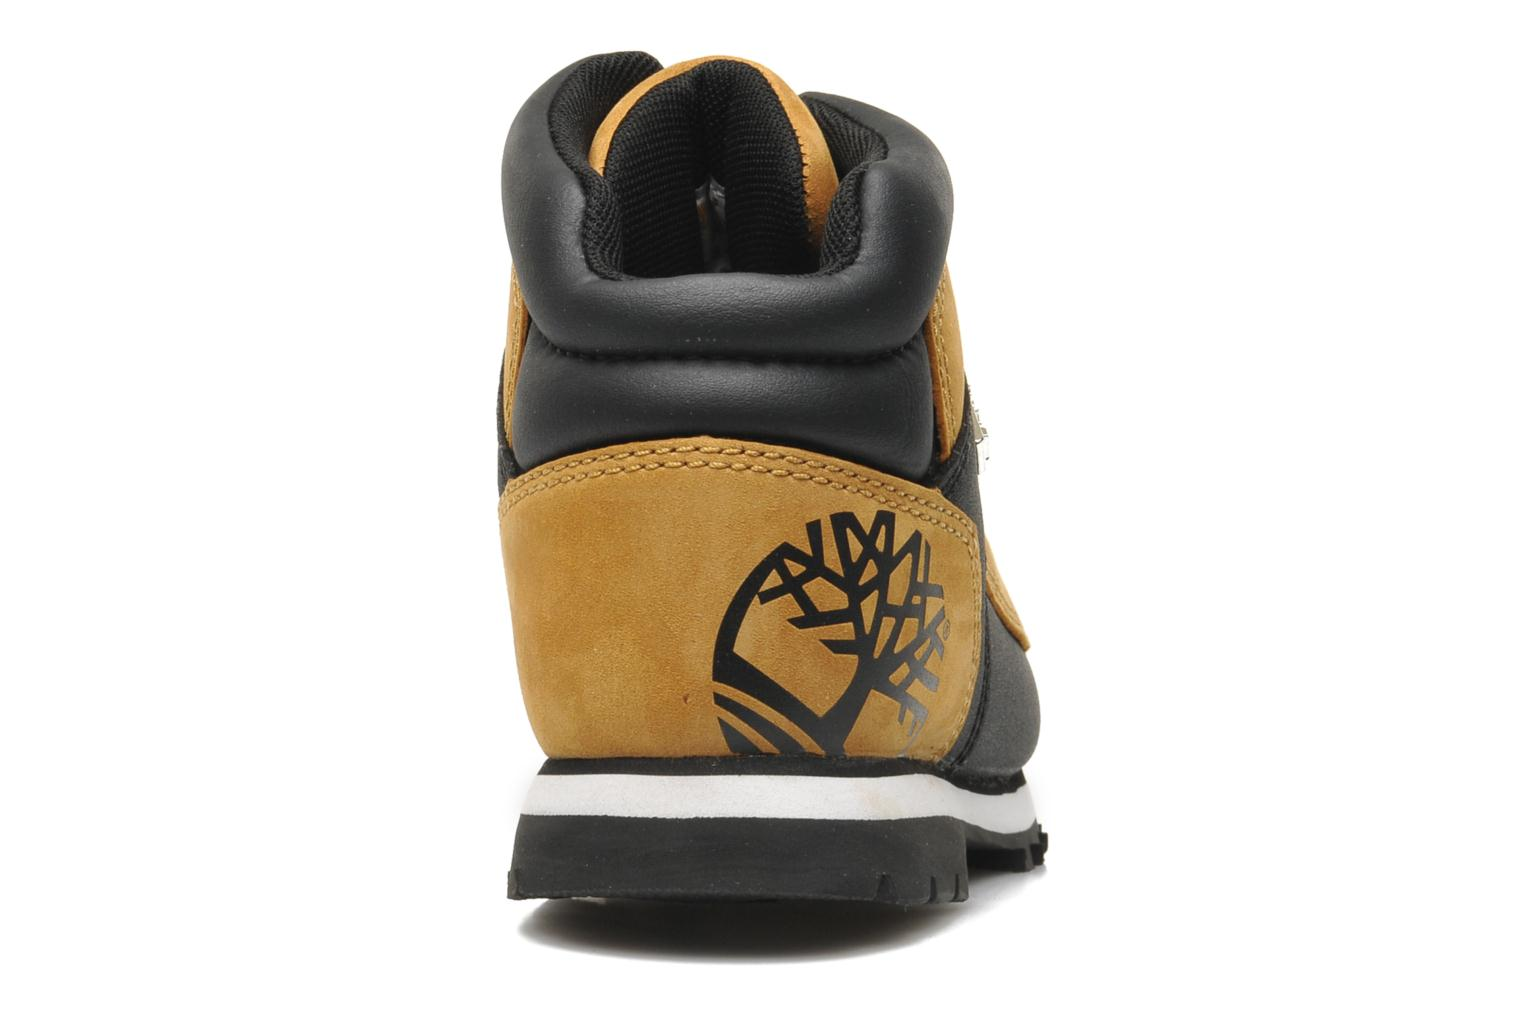 Euro sprint Kids Wheat